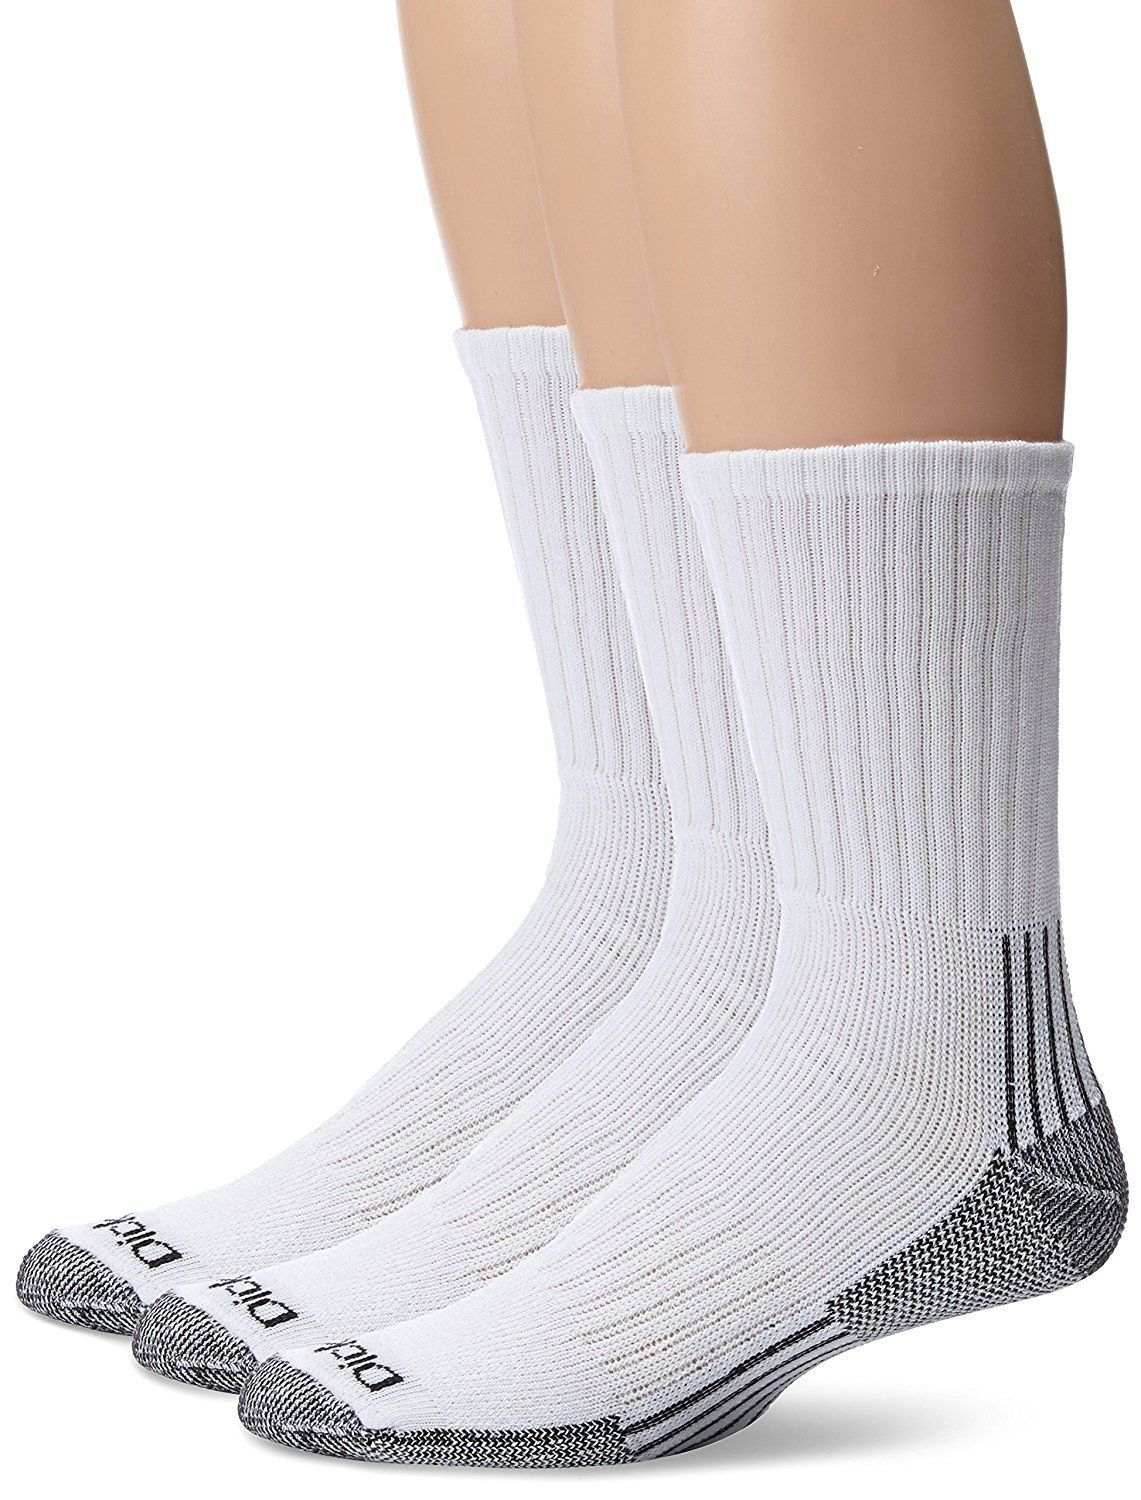 High Knee Support Socks Mens Heavyweight Cushion Compression Work Crew 3 Pairs